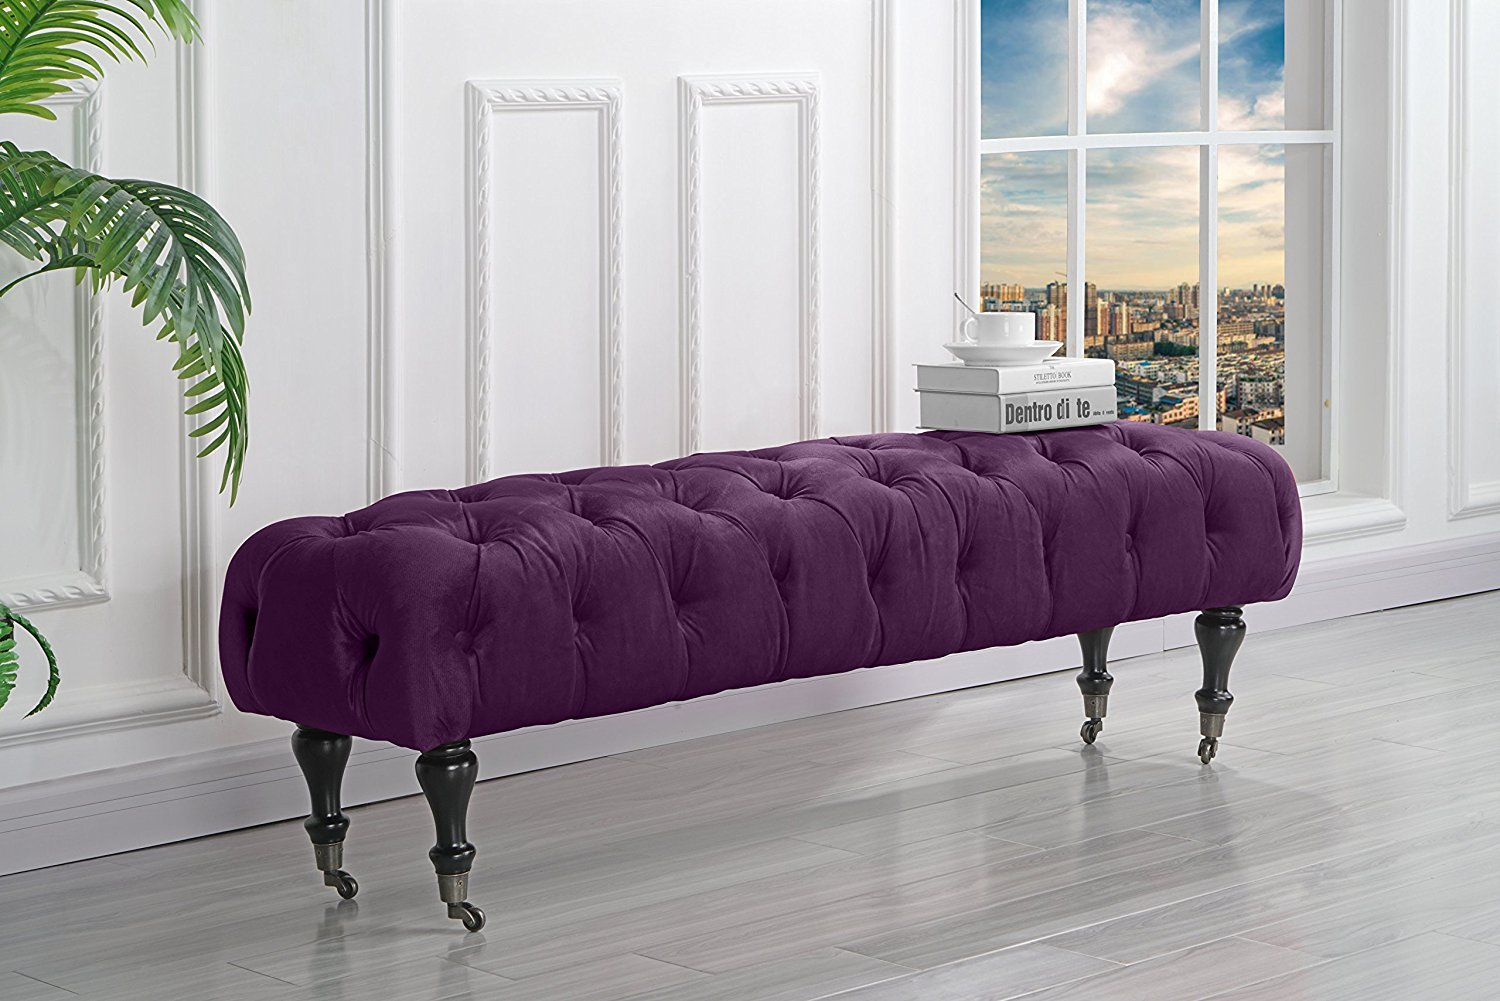 Classic Tufted Velvet Bedroom Vanity Bench with Casters (Navy) by Sofamania